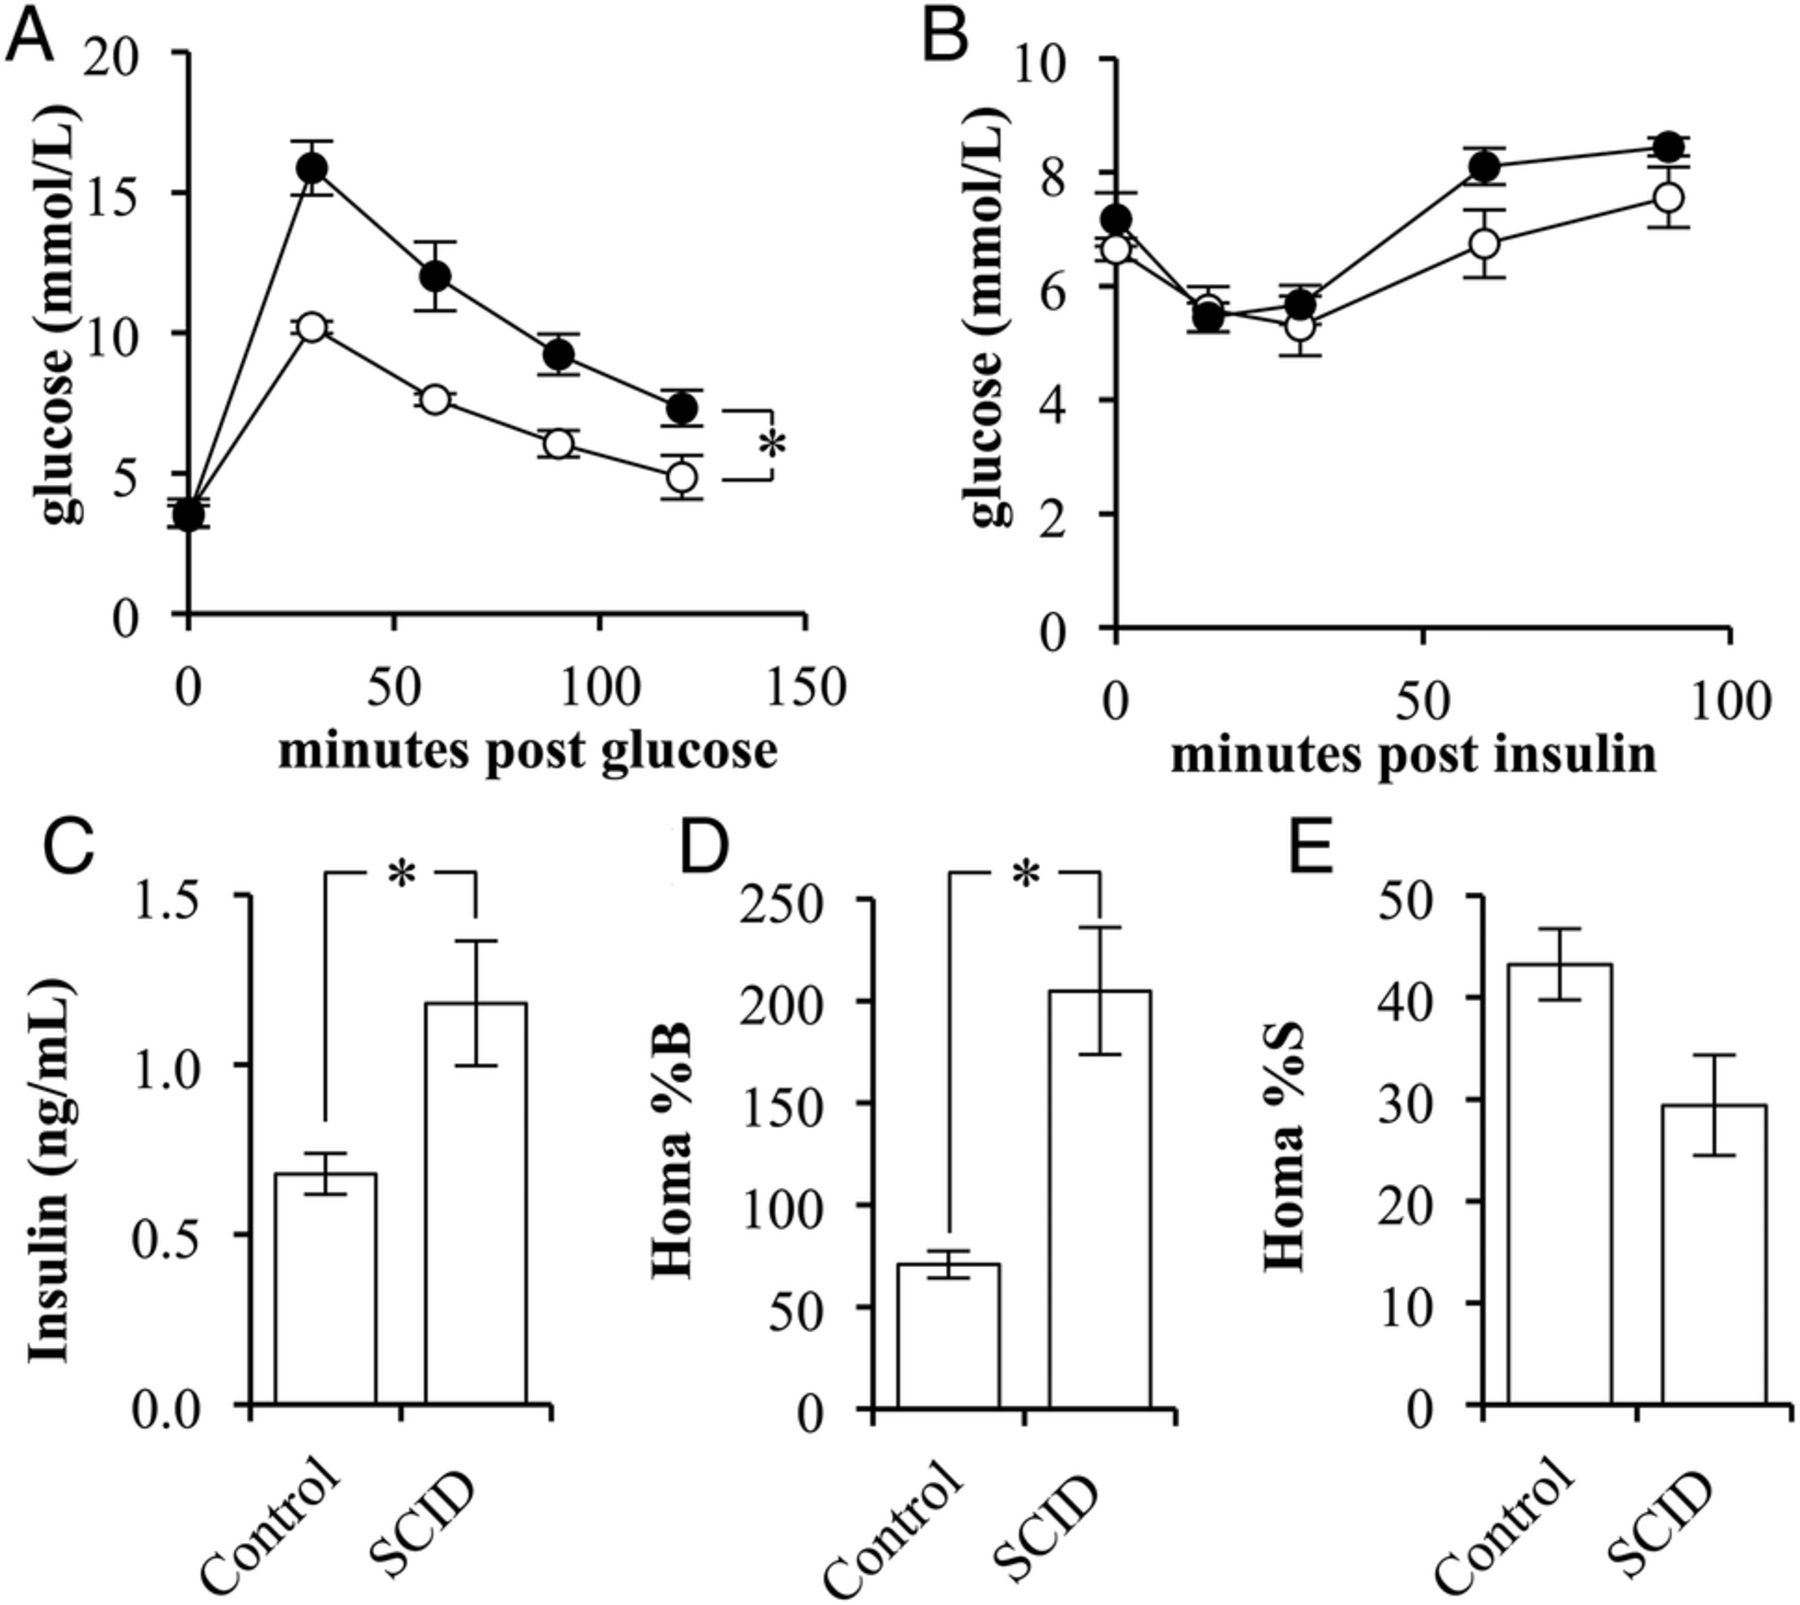 A role of the adaptive immune system in glucose